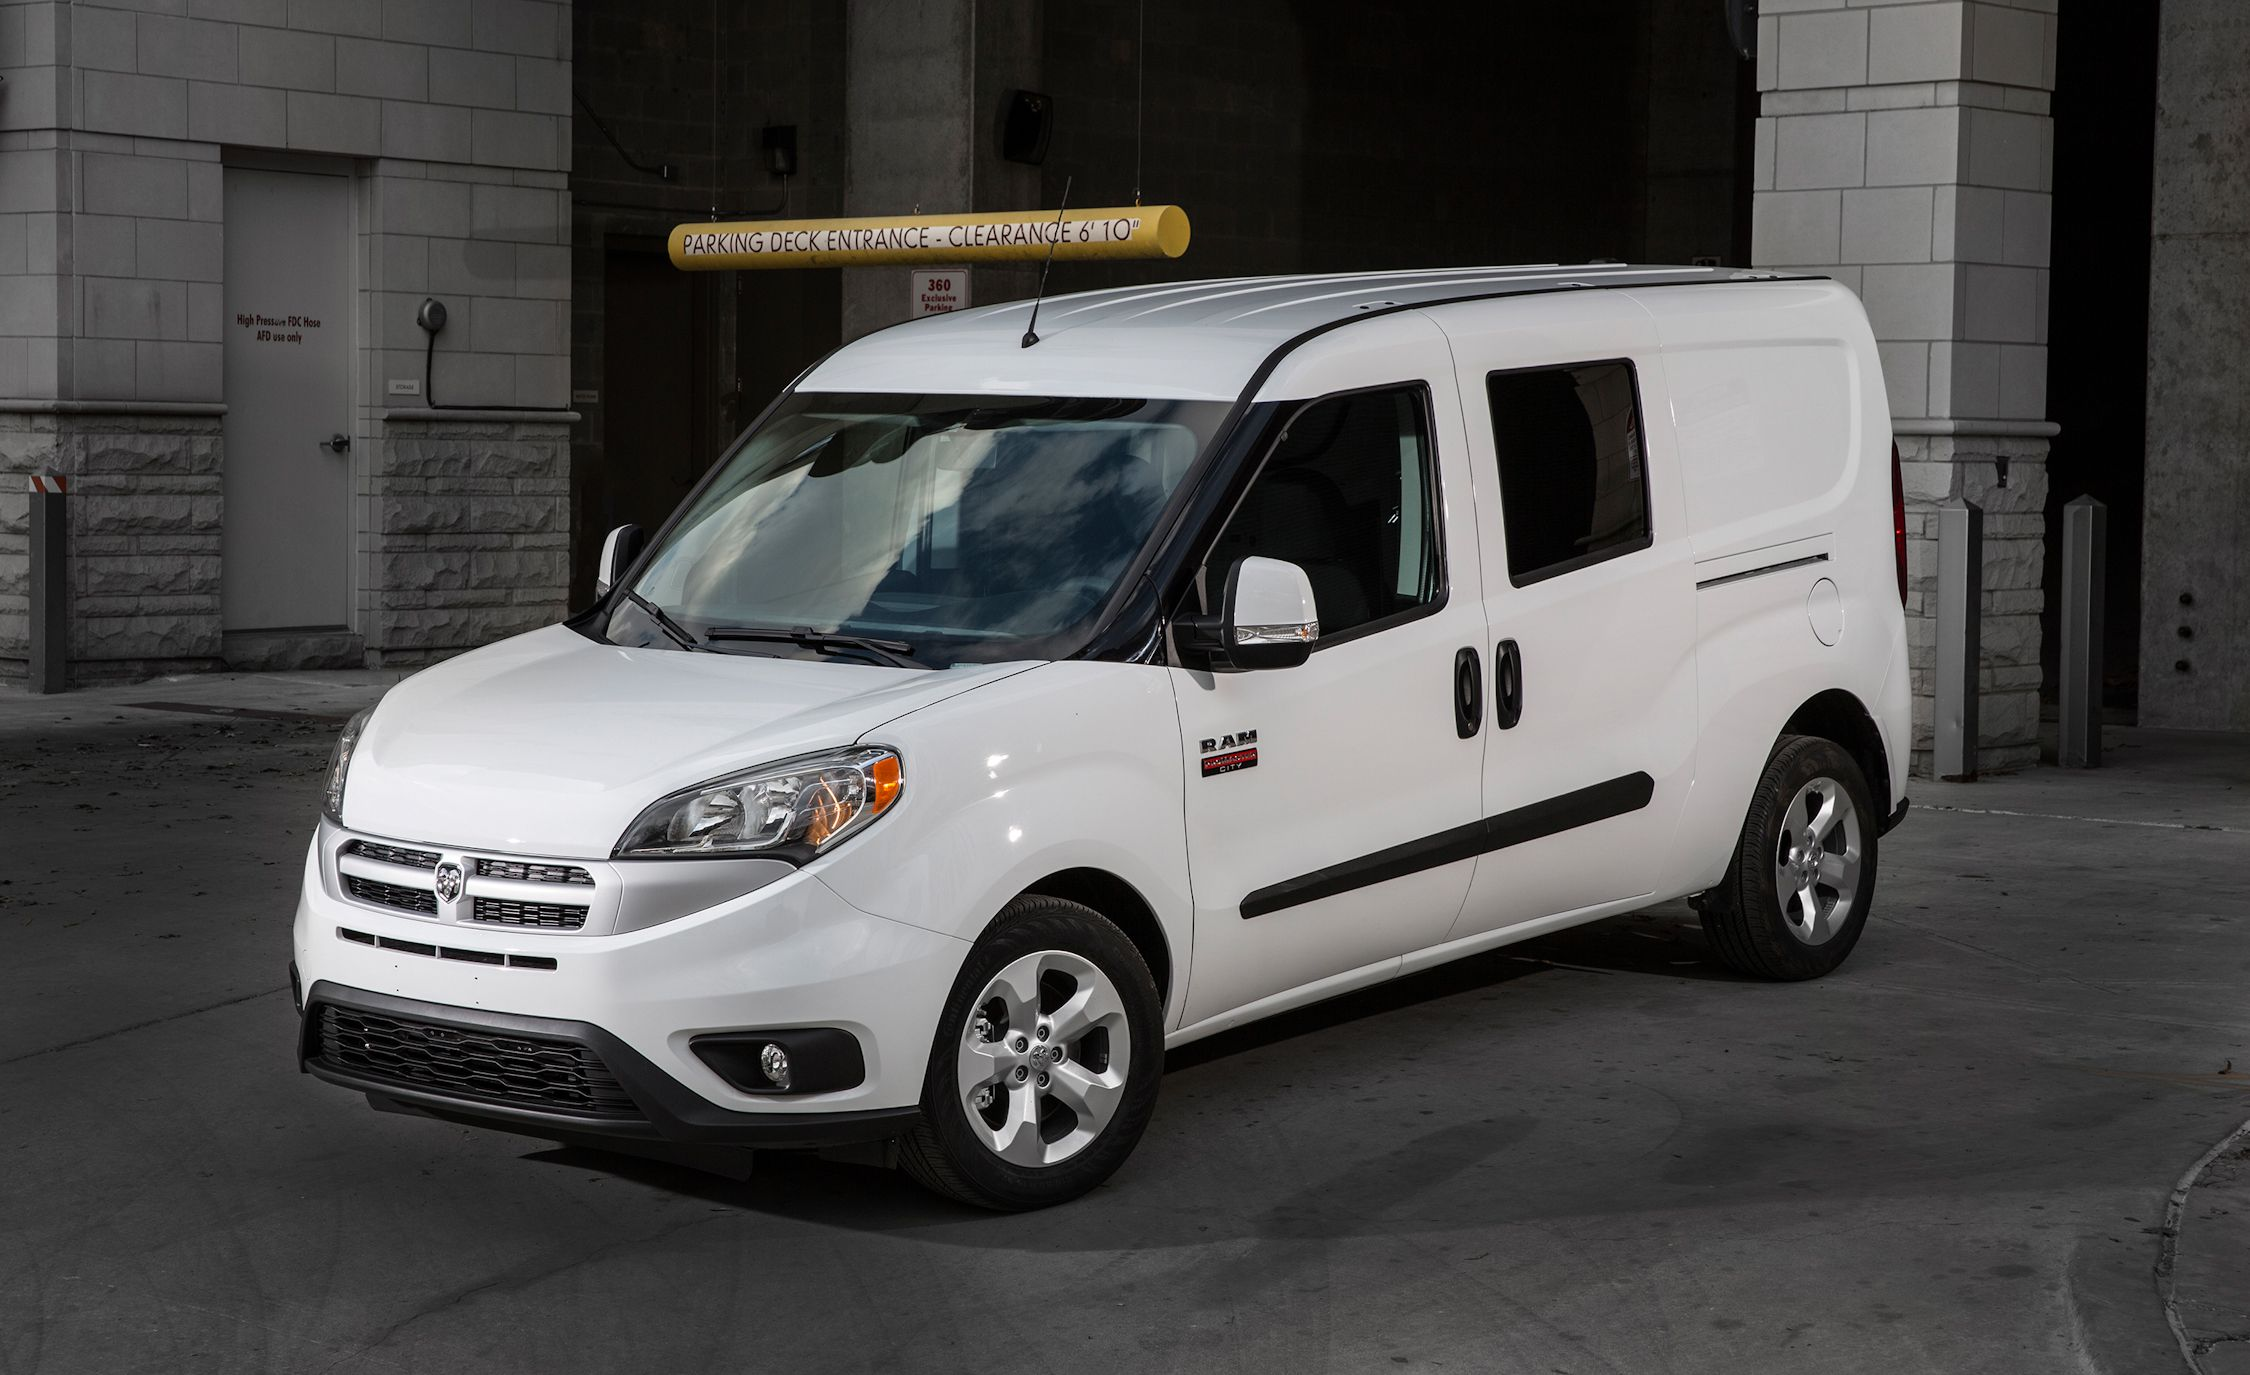 2019 Ram Promaster City Reviews Price Photos And Specs Car Driver